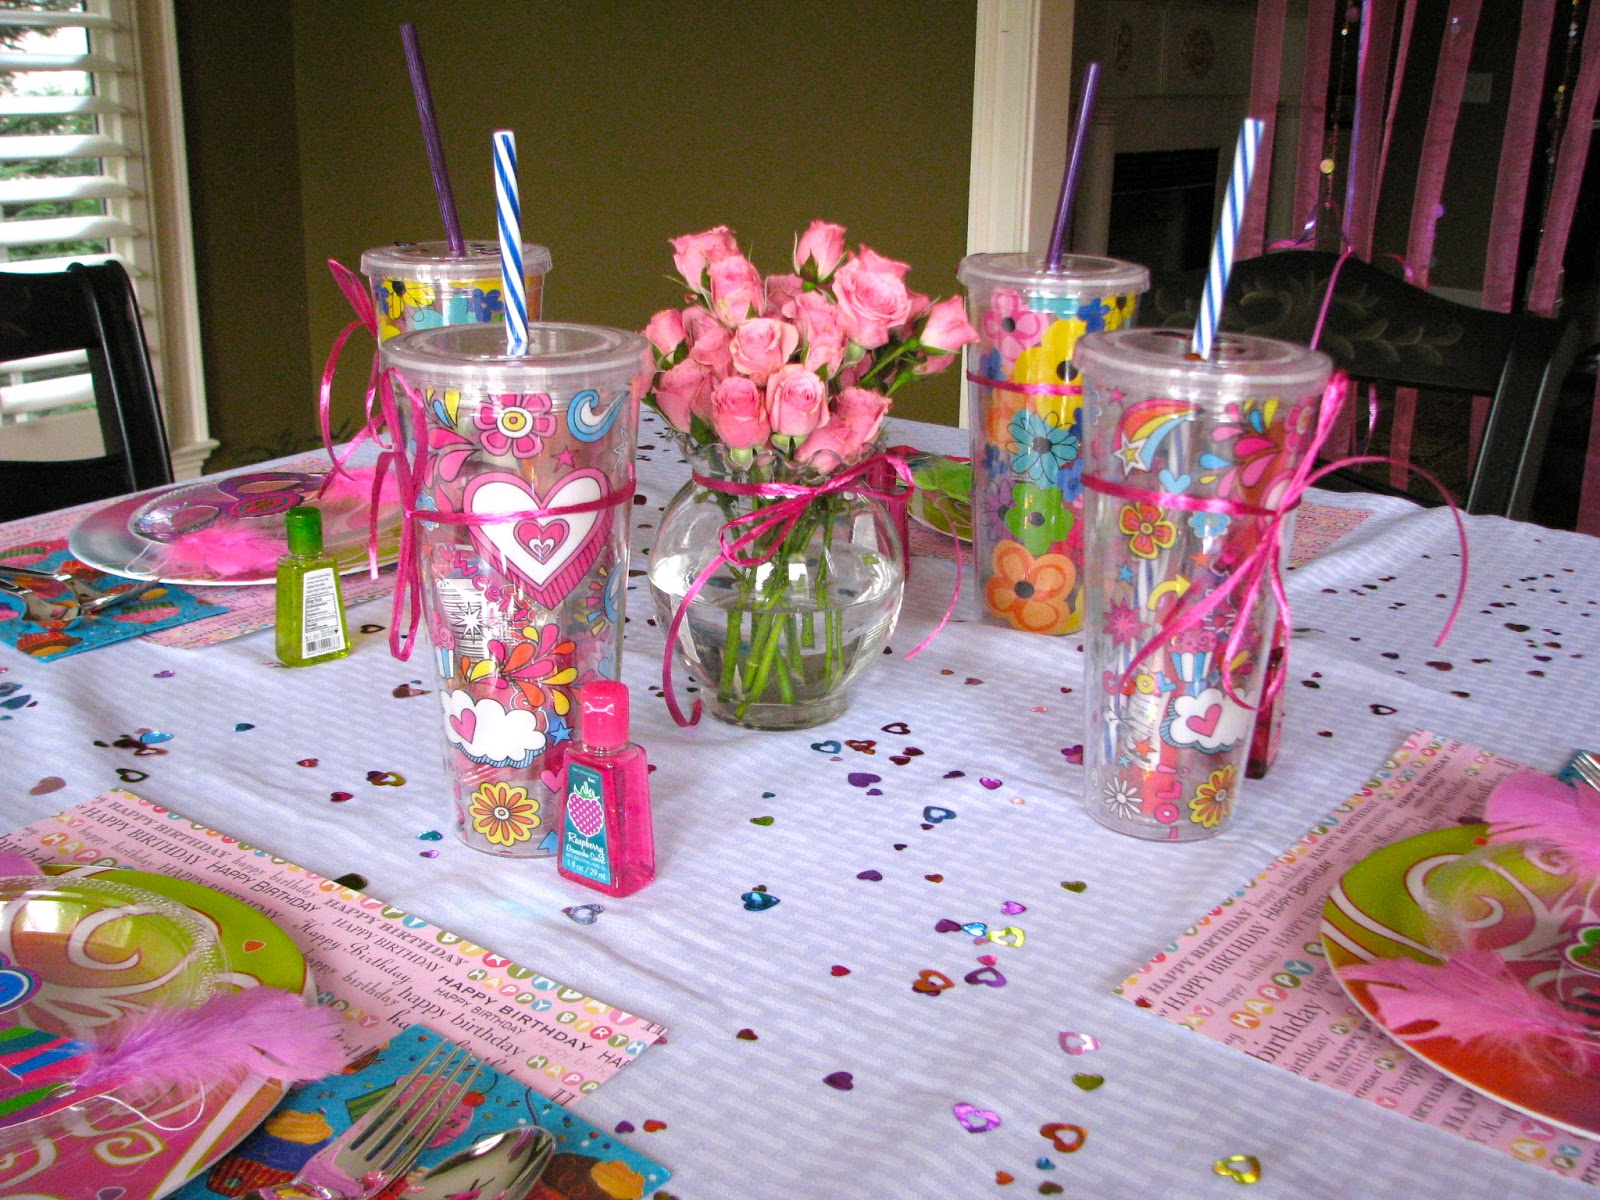 Homemadeville your place for homemade inspiration girl 39 s for Home decorations for birthday party